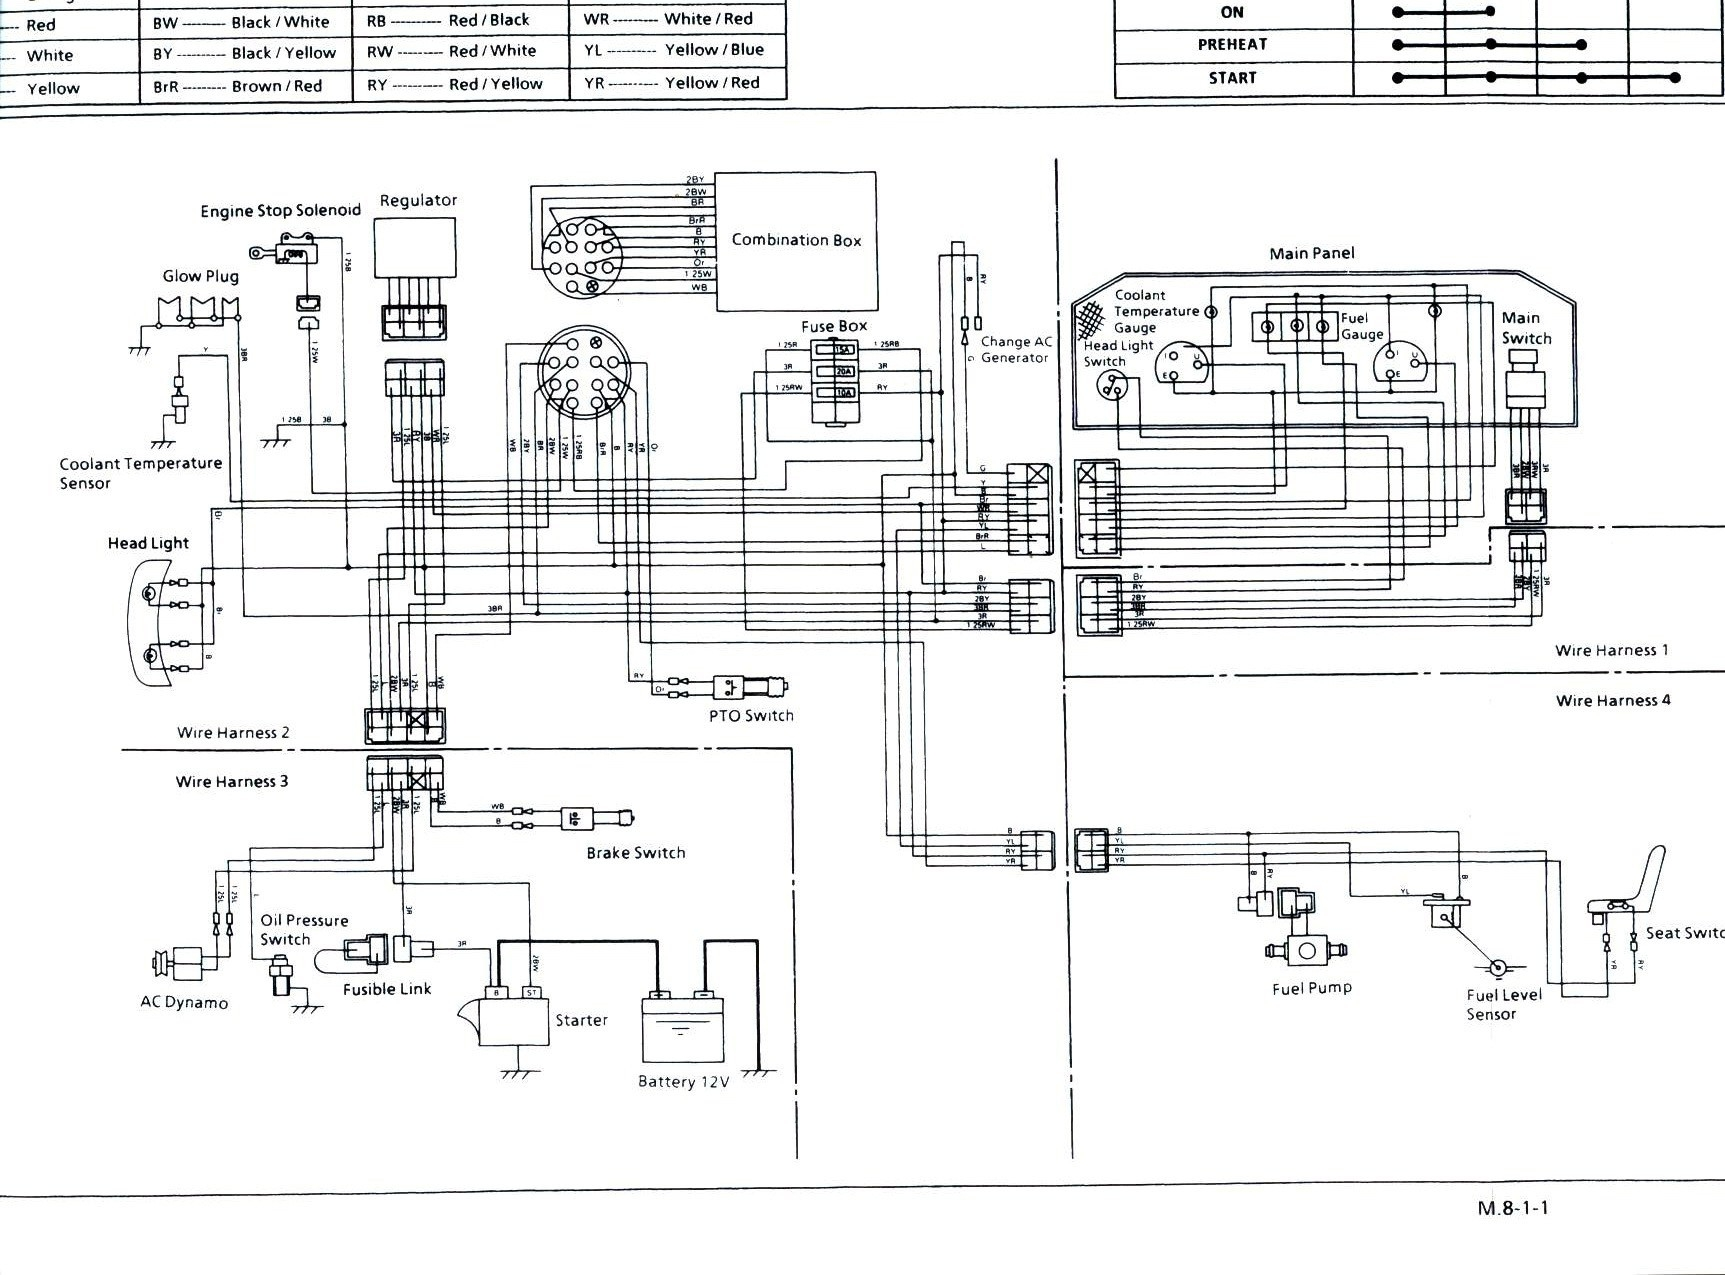 hight resolution of wiring diagram for kubota bx2200 free download wiring diagram basic kubota tractor ignition switch wiring diagram